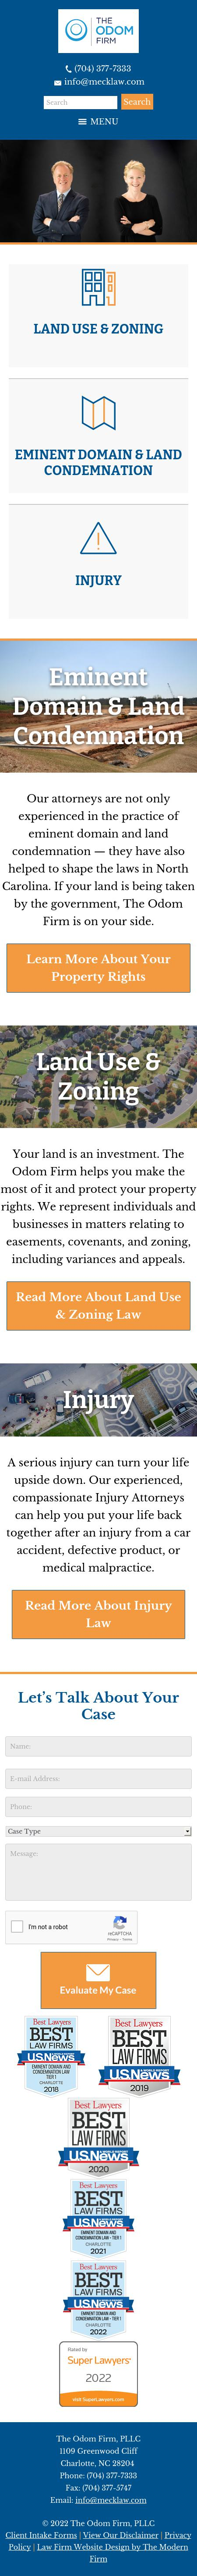 The Odom Firm, PLLC - Charlotte NC Lawyers